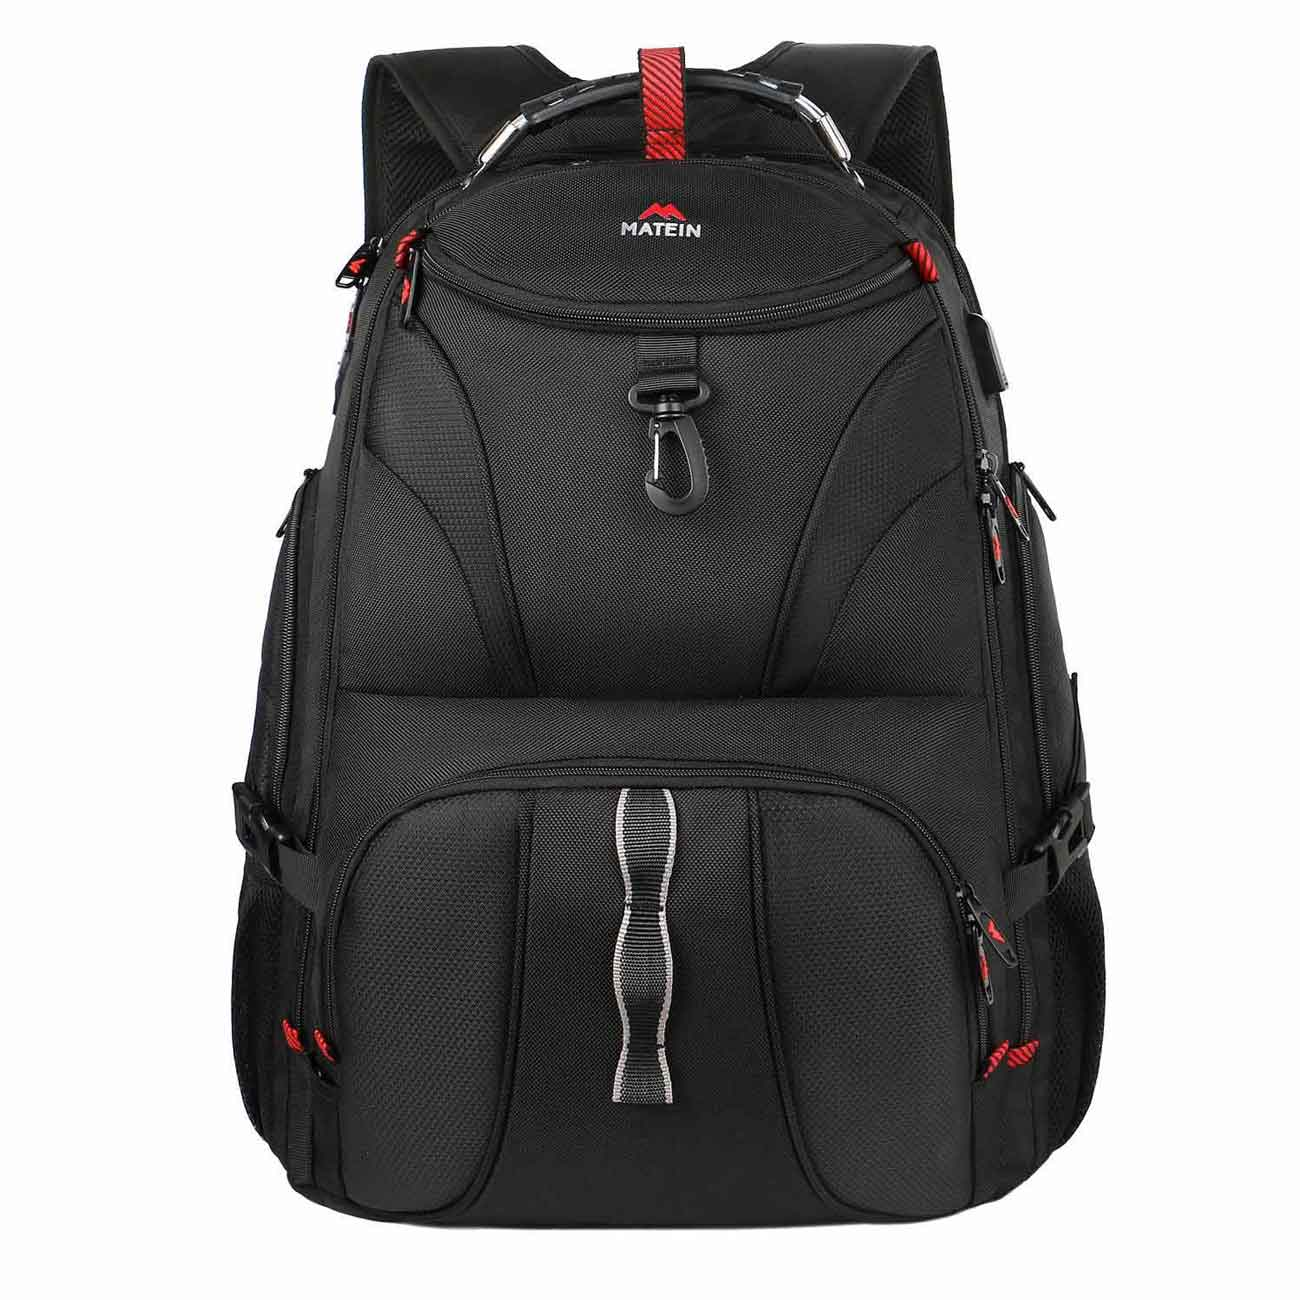 Matein Scale Backpack - travel laptop backpack